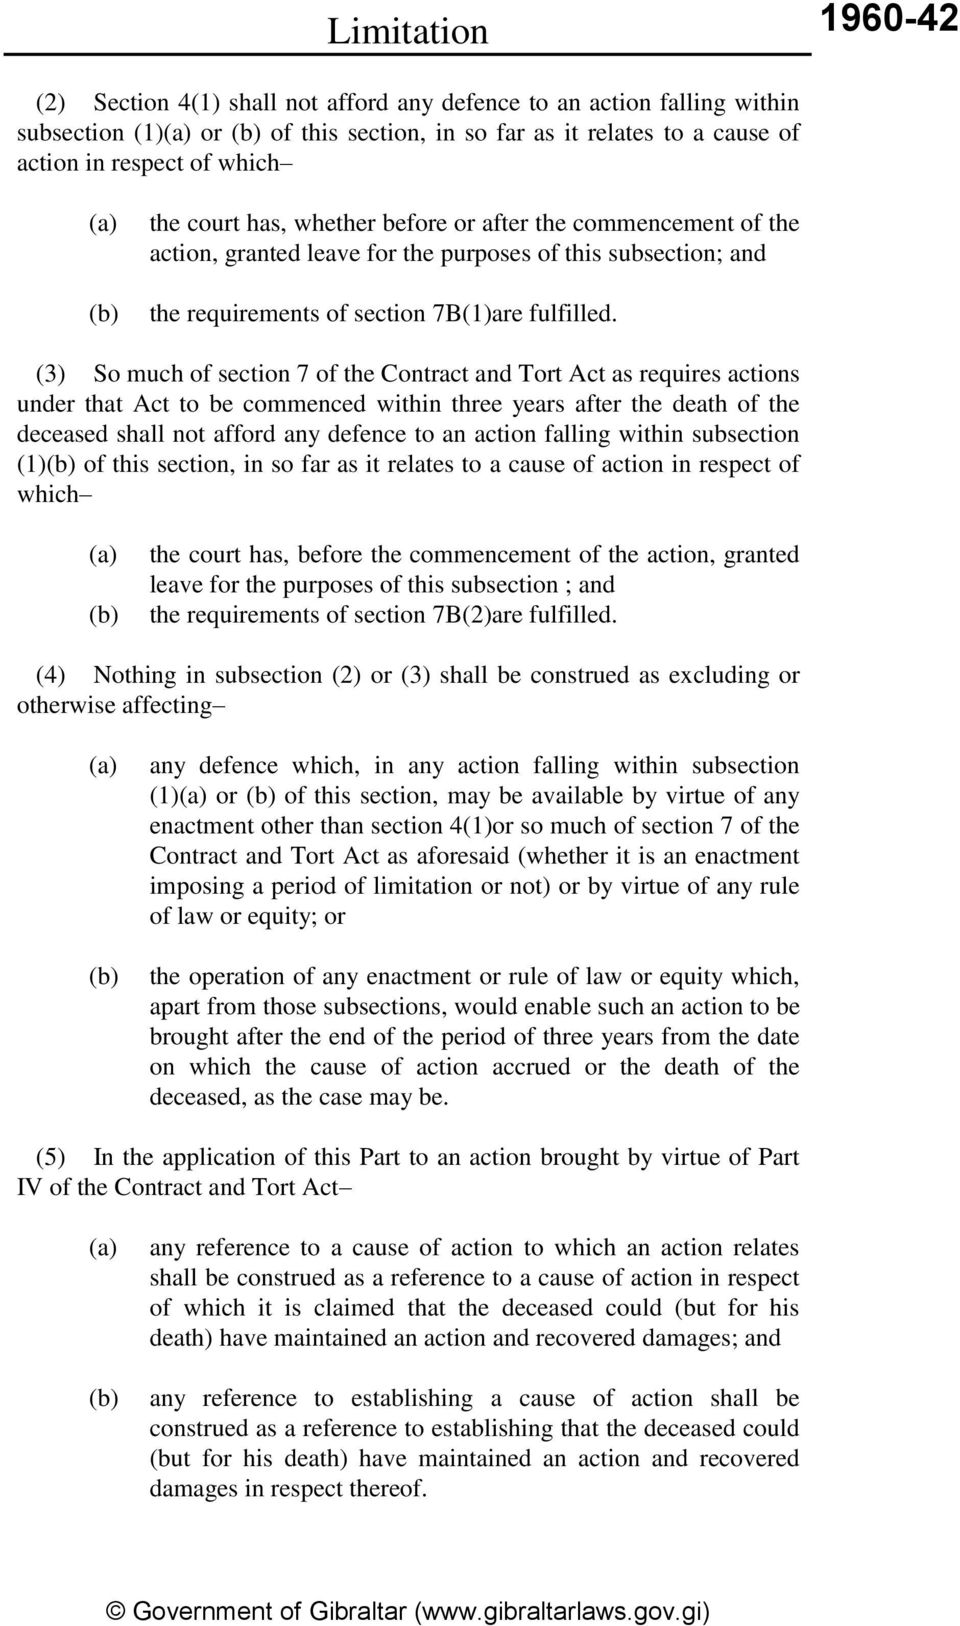 (3) So much of section 7 of the Contract and Tort Act as requires actions under that Act to be commenced within three years after the death of the deceased shall not afford any defence to an action